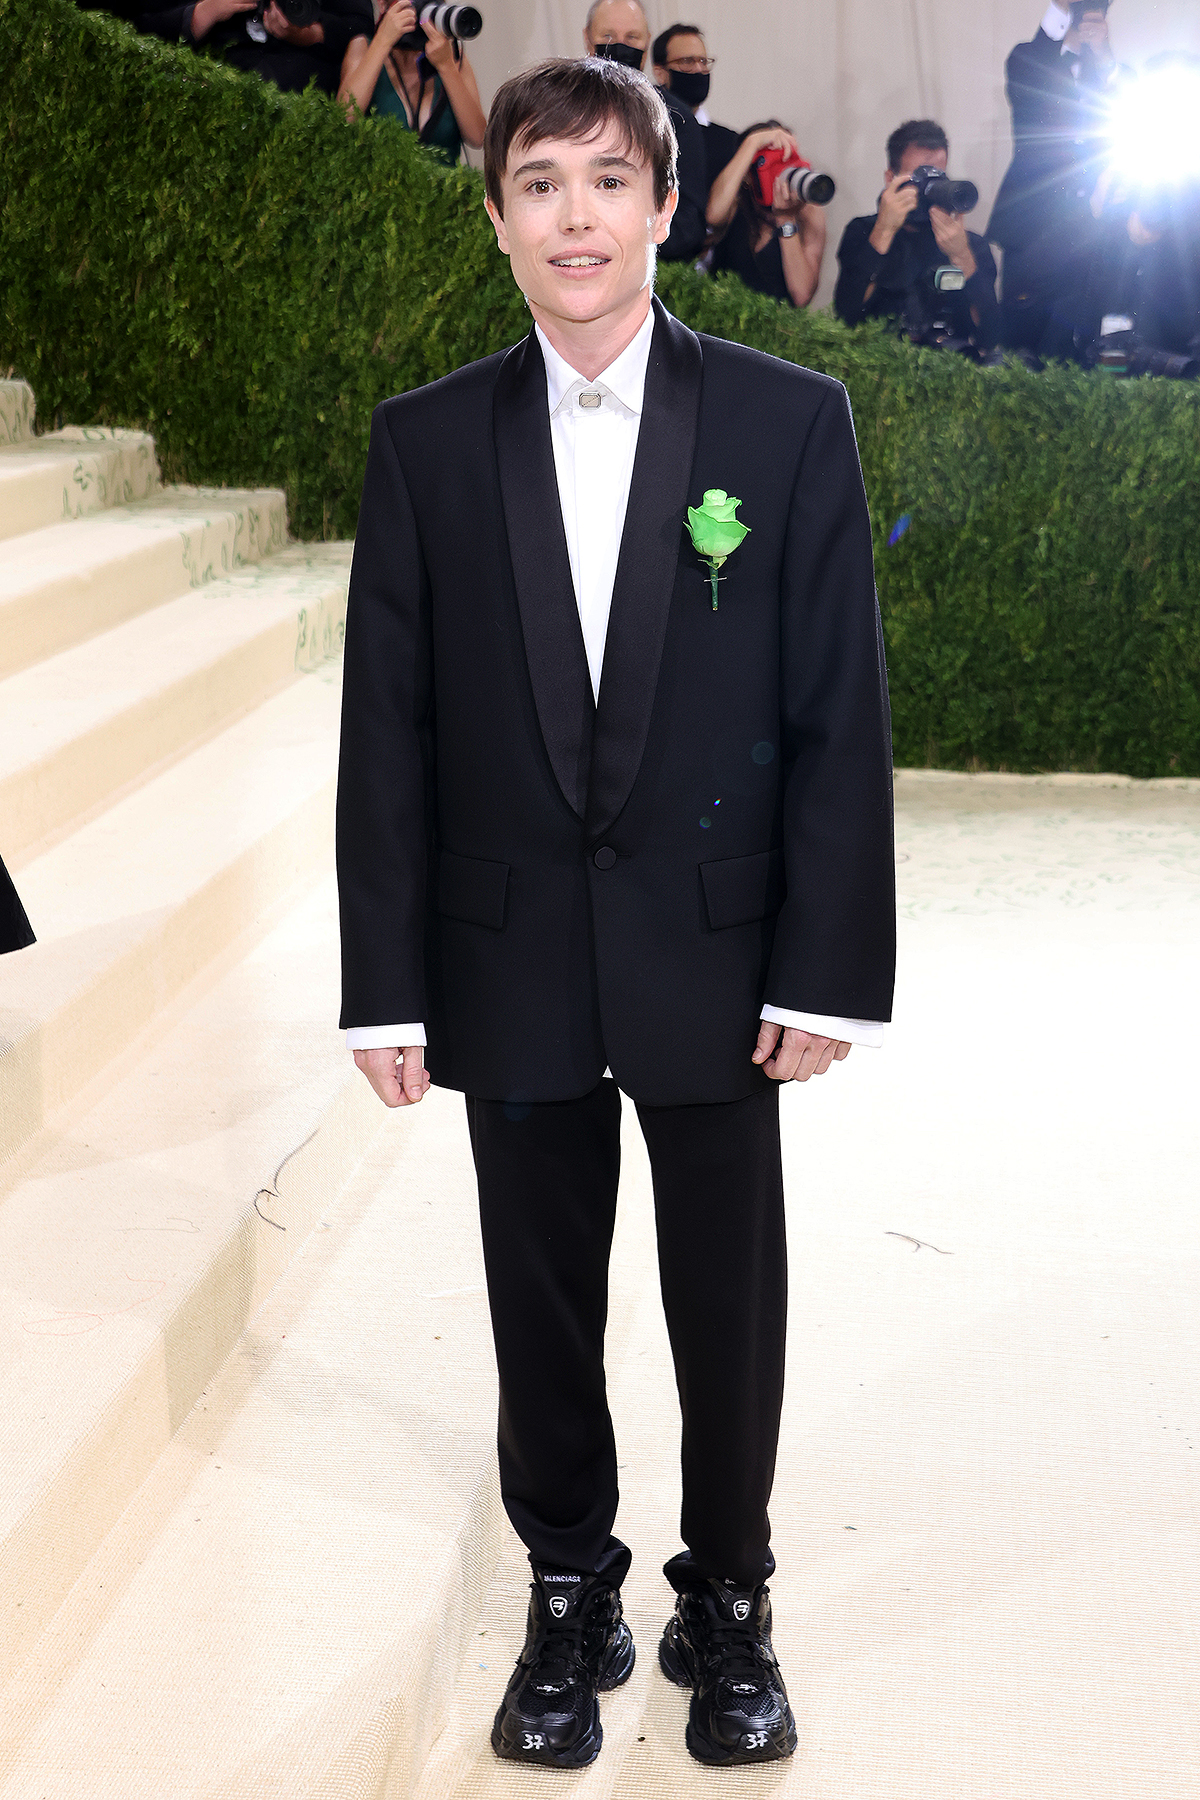 Elliot Page attends The 2021 Met Gala Celebrating In America: A Lexicon Of Fashion at Metropolitan Museum of Art on September 13, 2021 in New York City.